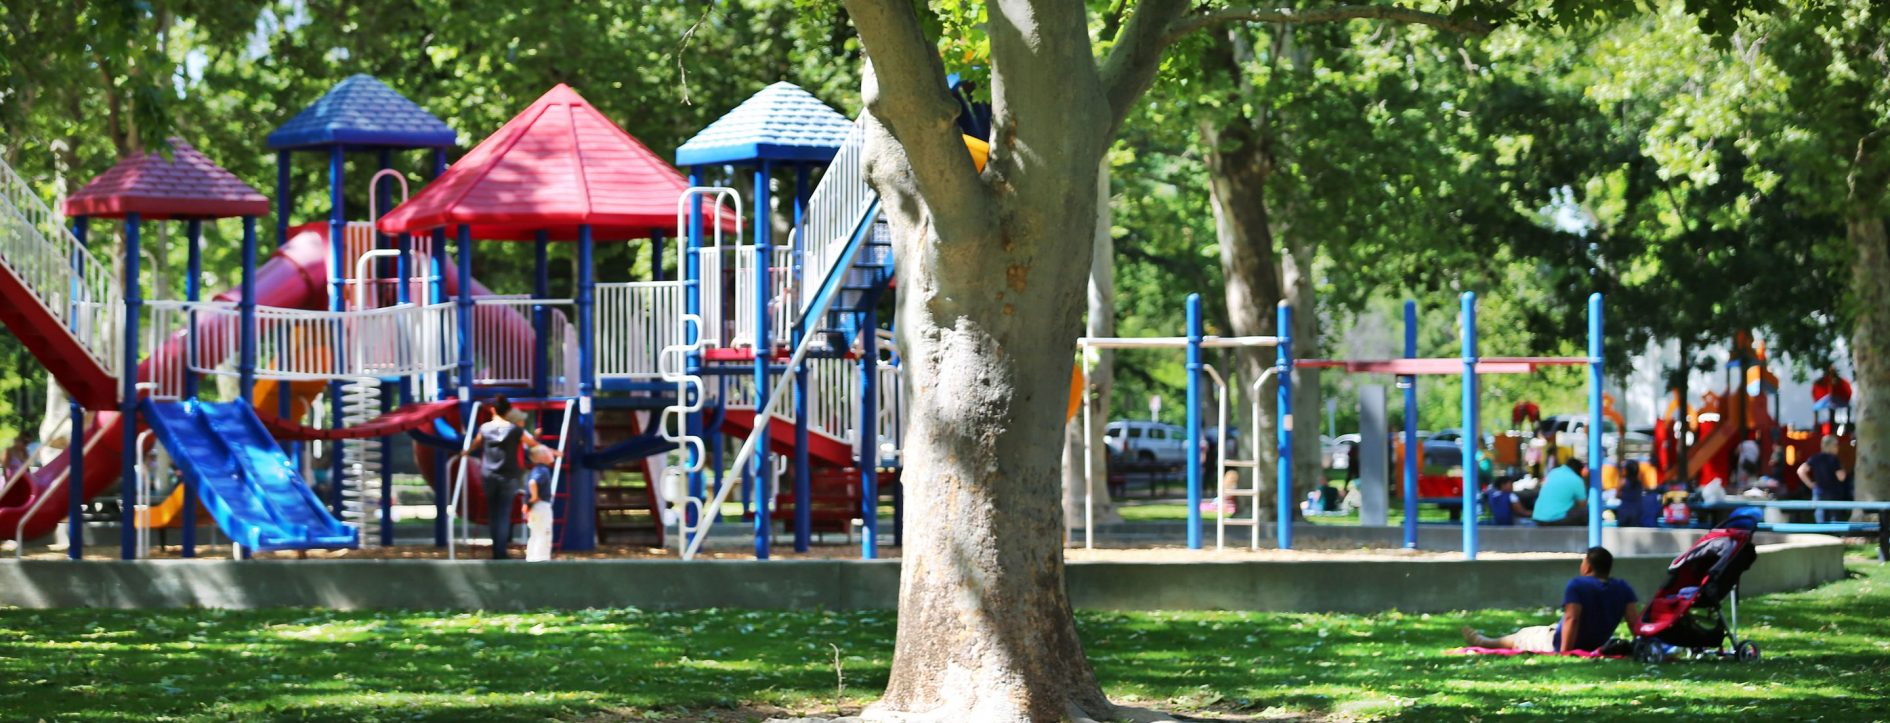 A shady afternoon escape from the heat as a father watches his children play at Royer Park in Roseville, California